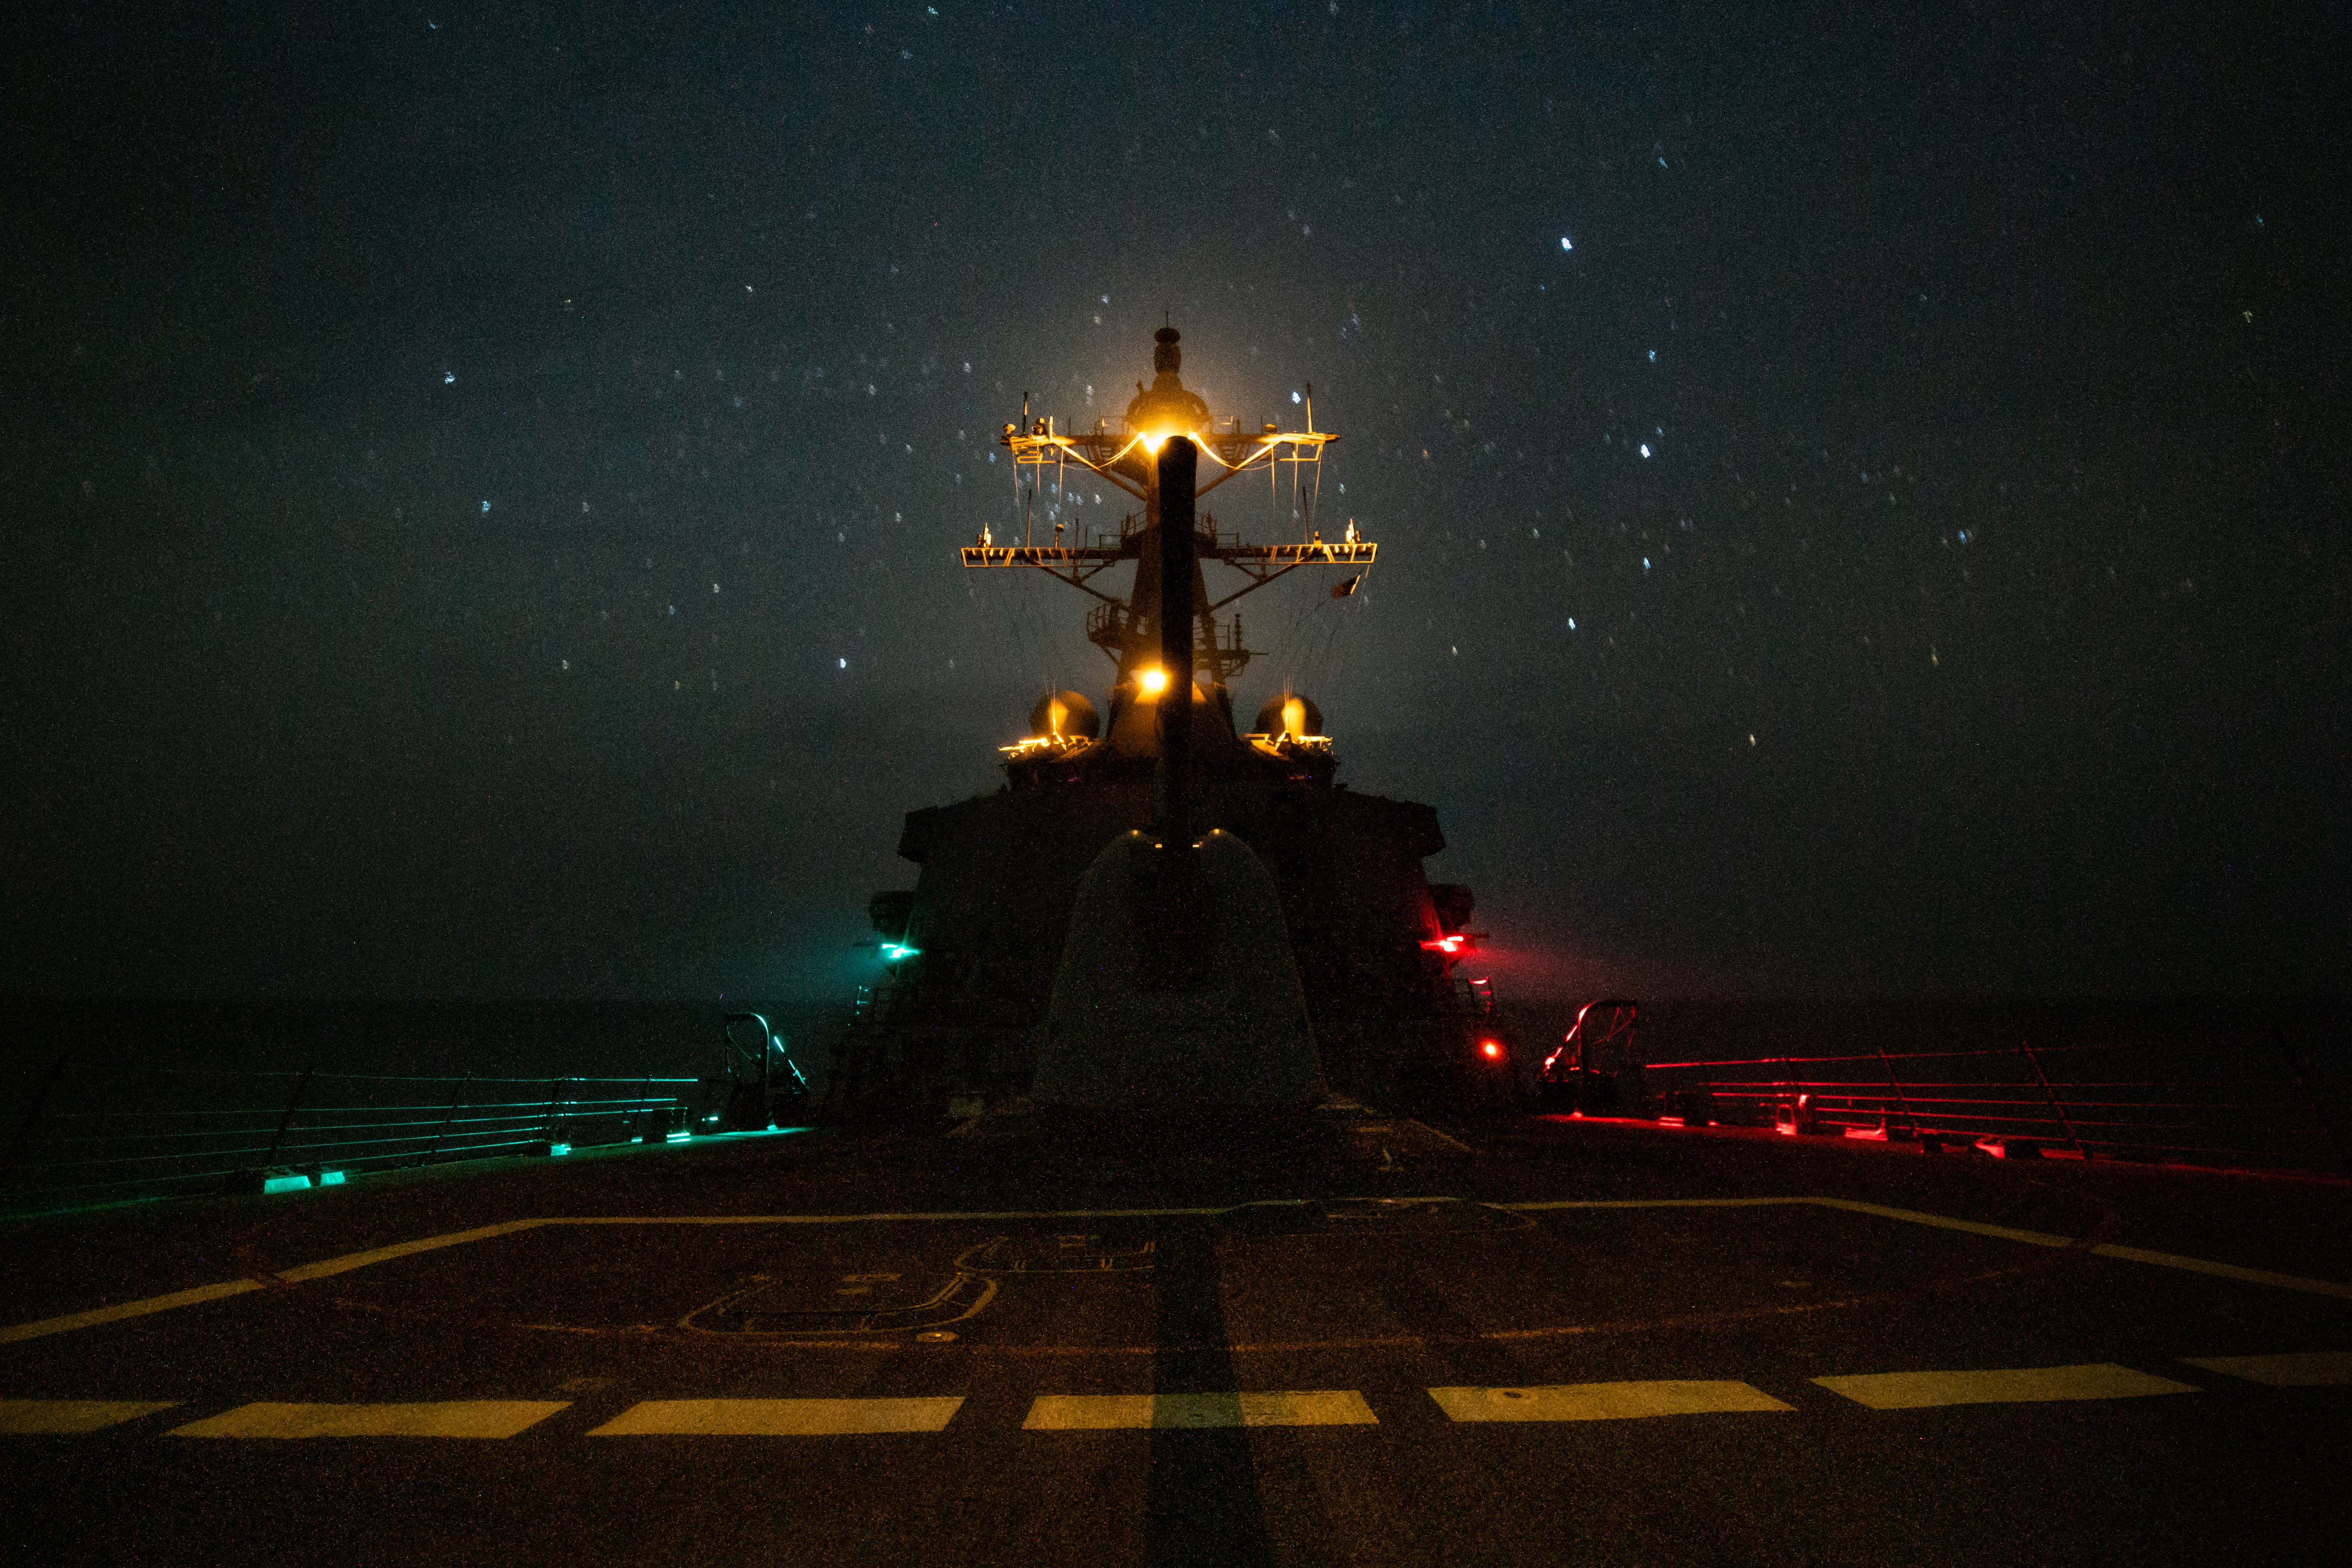 The guided-missile destroyer Mahan transits the Gulf of Oman July 7. (MCSN Ryan Childress/Navy)